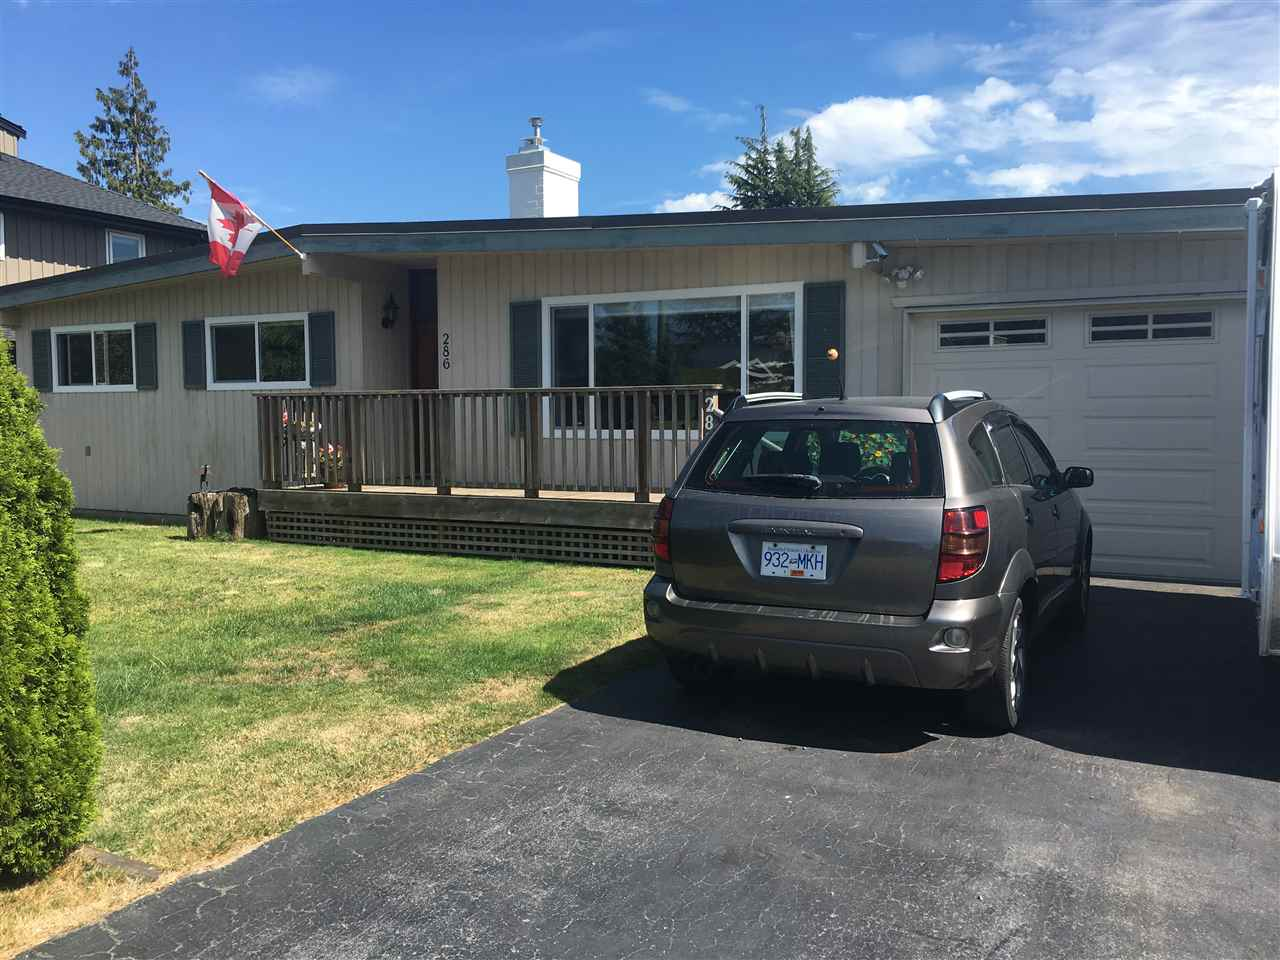 Welcome to Boundary Bay! Beautifully renovated Rancher on a large (75' X 100'), south exposed beautifully landscaped & sunny property with fruit trees, vegetable beds and a garden shed (with ski-lites) and a large covered porch. This home features 3 bedrooms, 2 new full bathrooms, a new kitchen with a ski-lite, a double garage, newer vinyl windows and a new sunroom. 4 parking aside from the double garage. Just steps from Centennial Beach, nature trails.